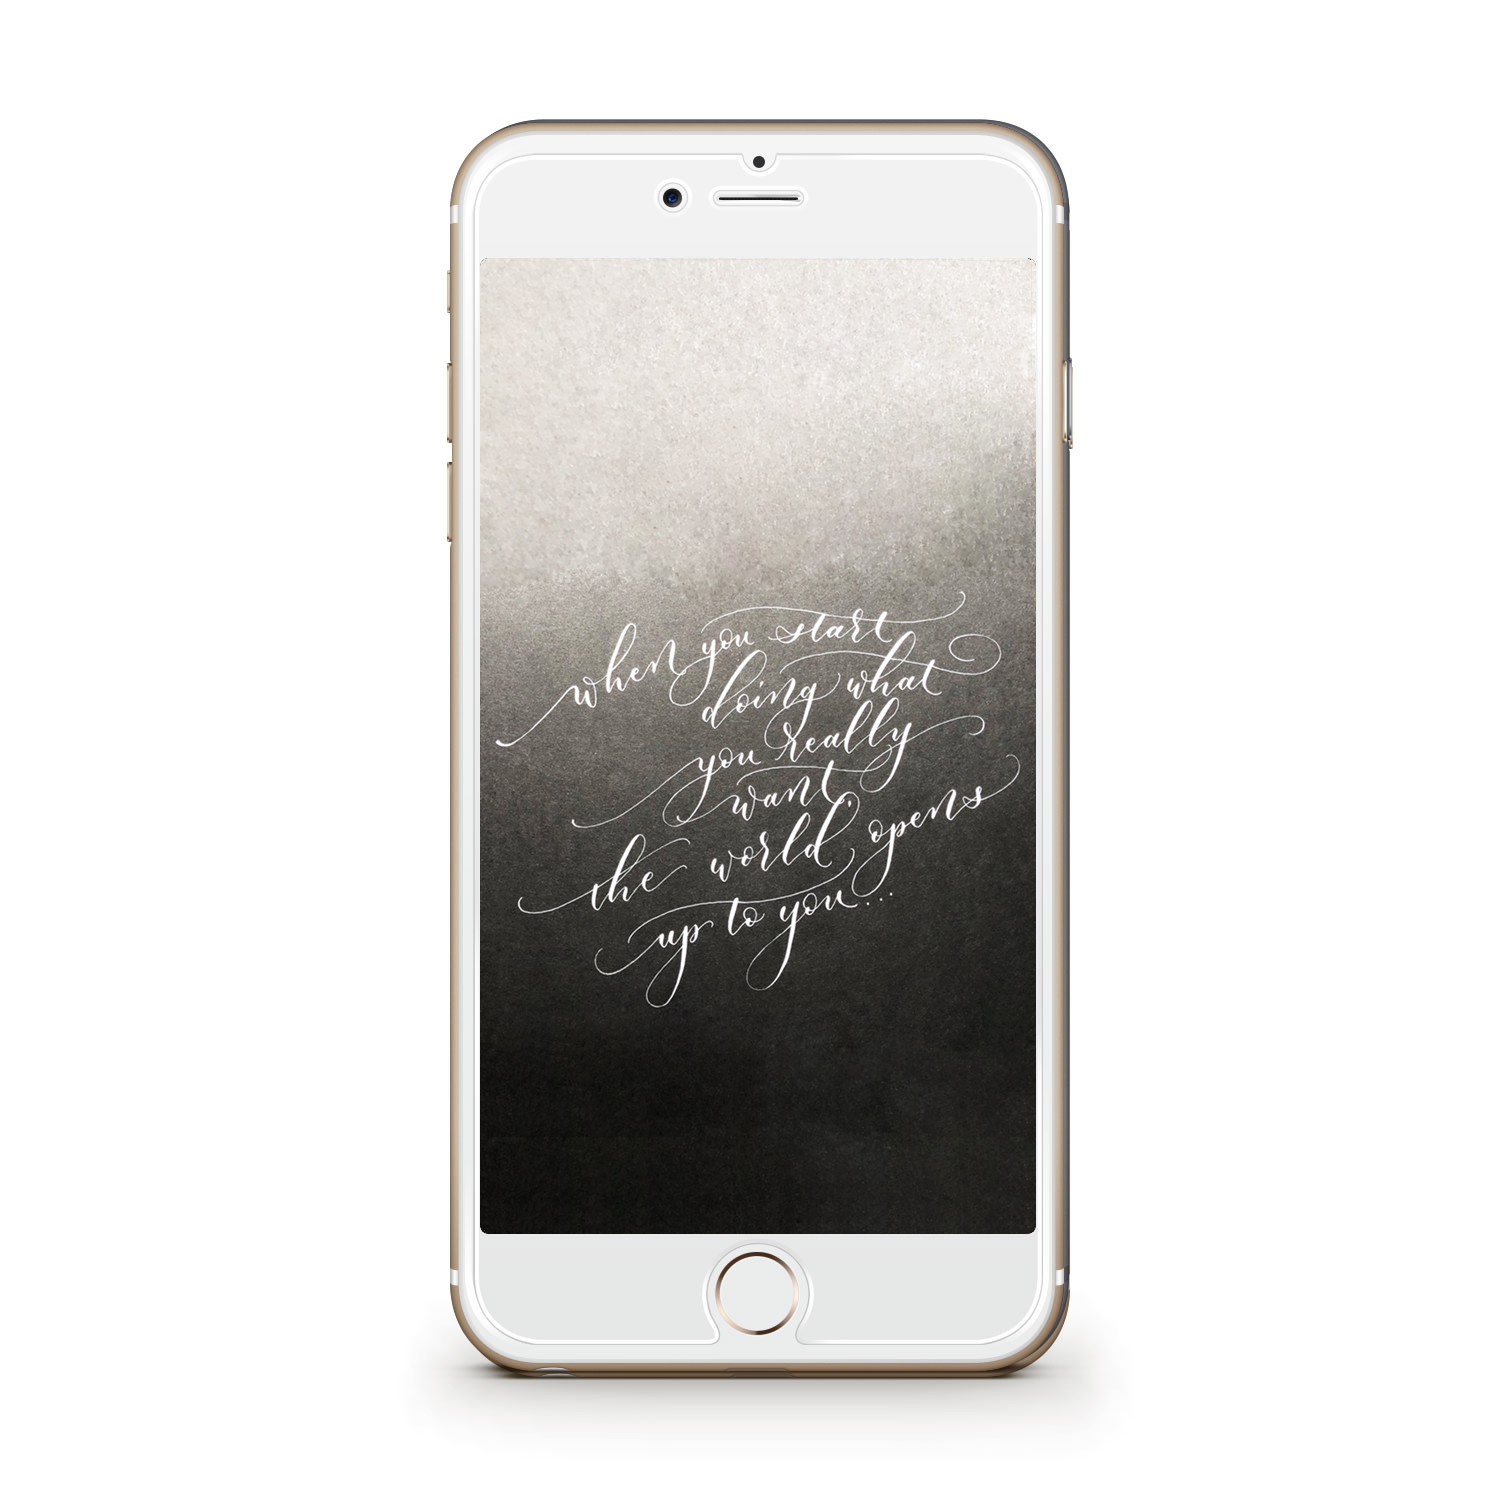 Do-what-you-want-(IPHONE).jpg